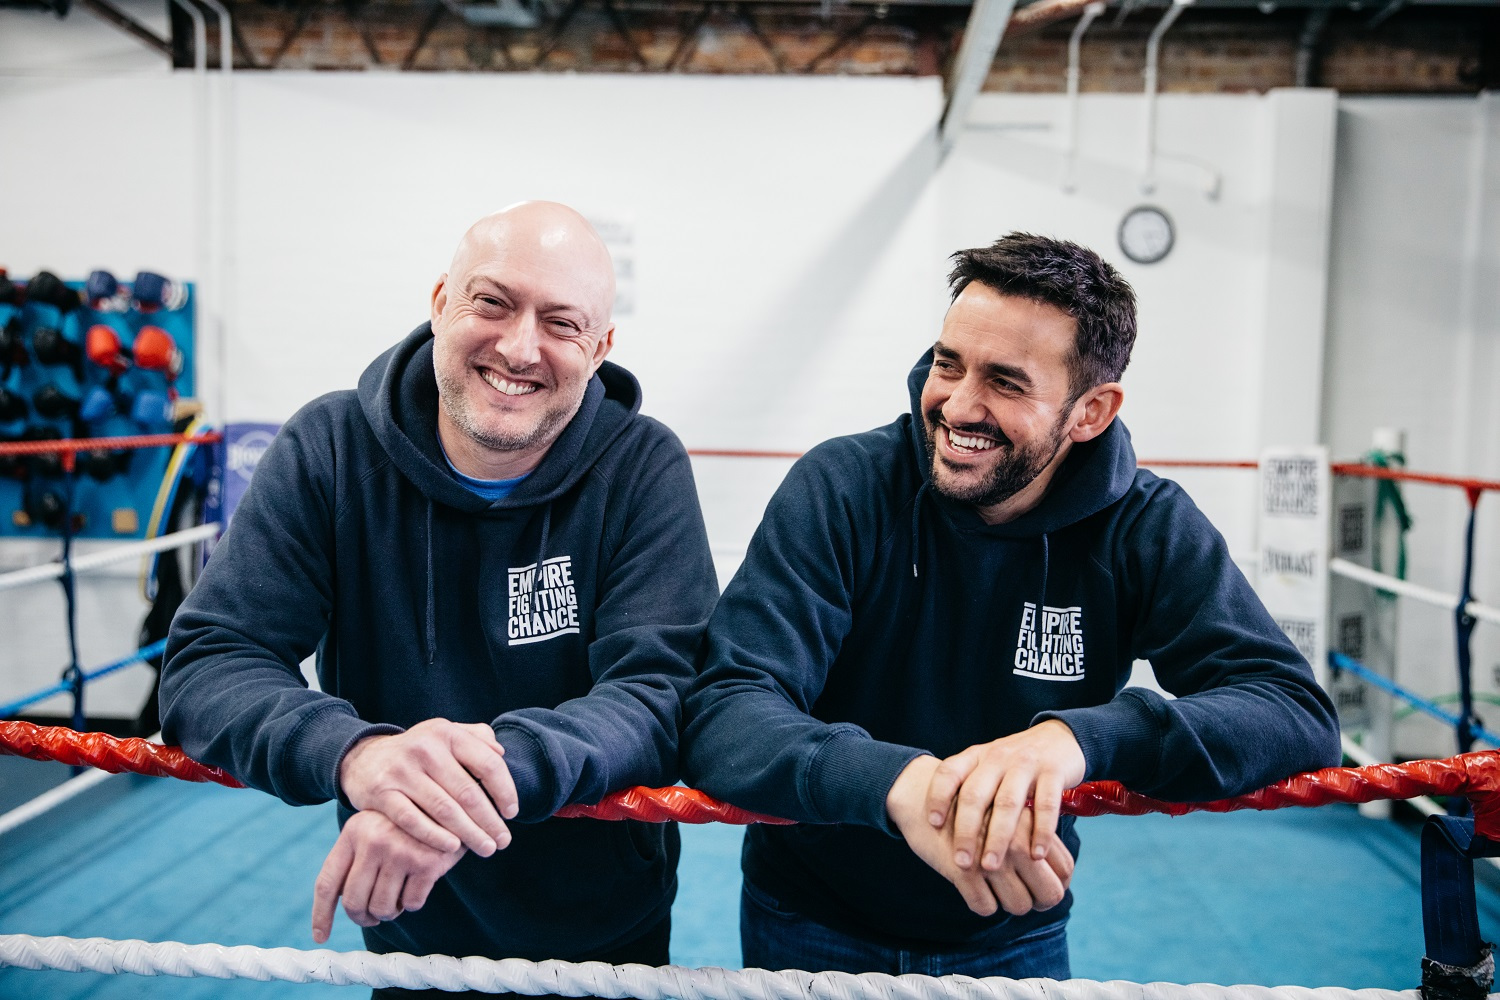 Martin Bisp and Jamie Sanigar of Empire Fighting Chance in the boxing ring